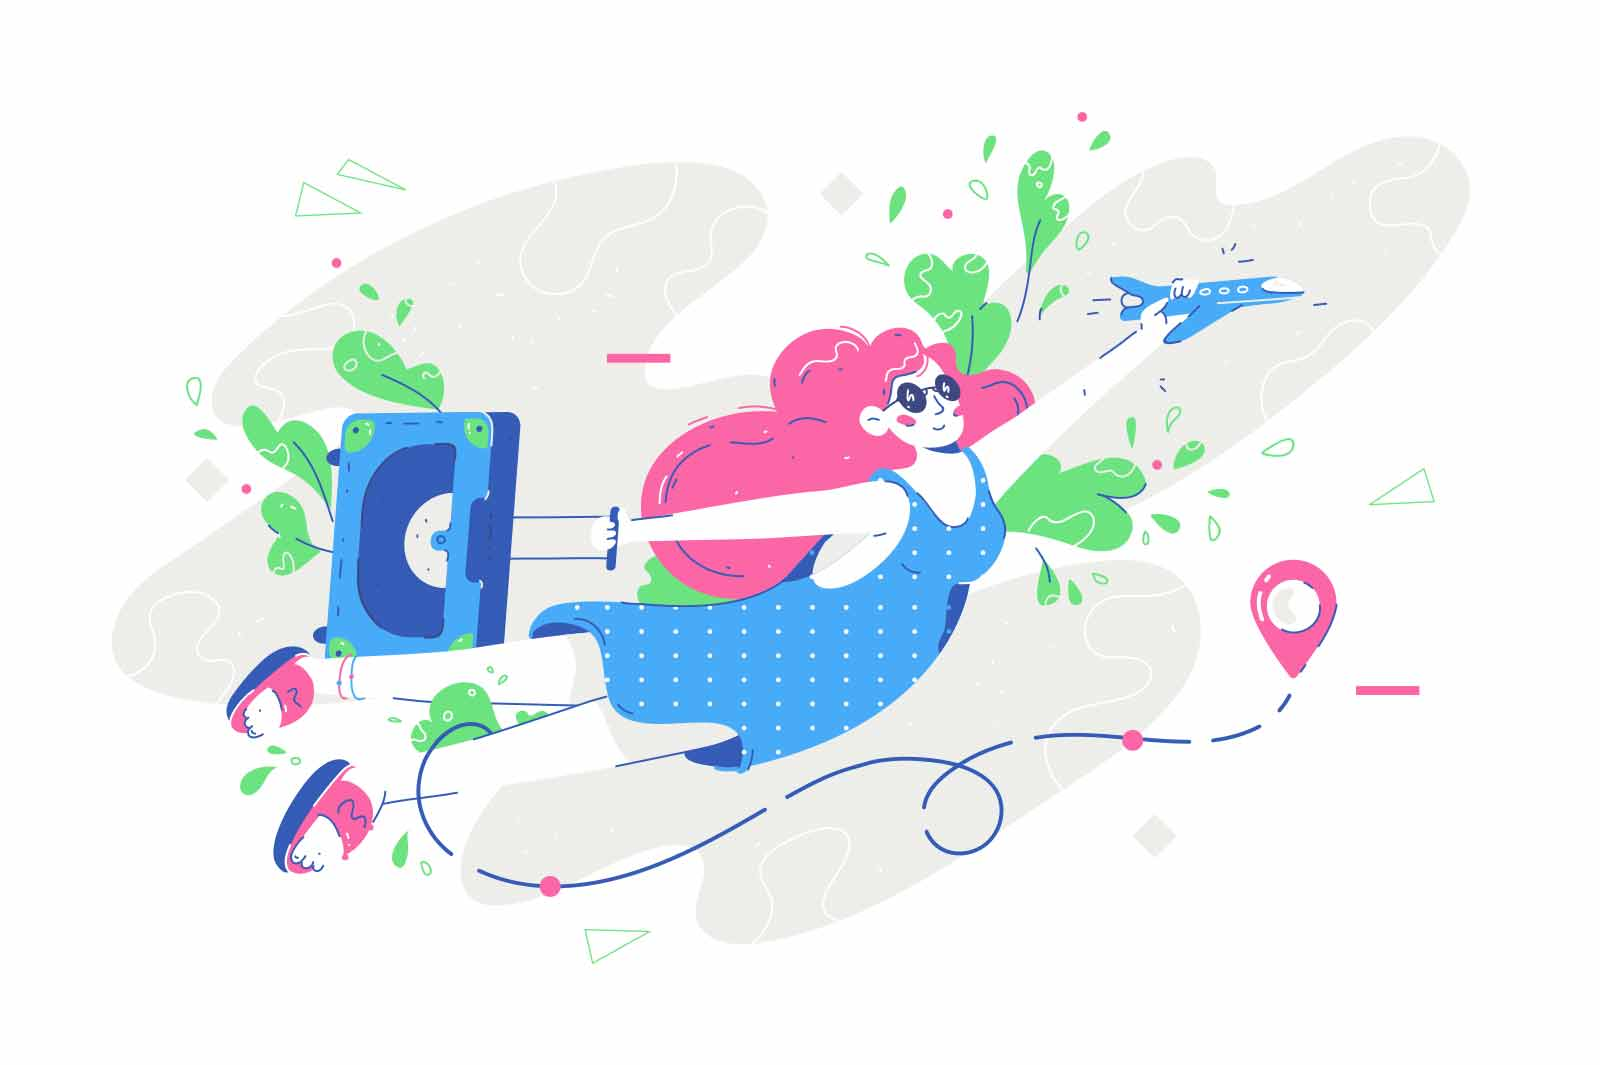 woman; flying; vacation; vector; illustration; female; bright; outfit; suitcase; holiday; flat; style; summer; time; travel; concept; departure; arrive; location; airplane; case; person; colourful; abstract; decor; decoration; relaxation; freedom; colour; art; creative; design; graphic; joy; happiness; adult; leaf; warmth; rest; leisure; plane; sky; air; composition; character; cute; minimal; isolated; white; background